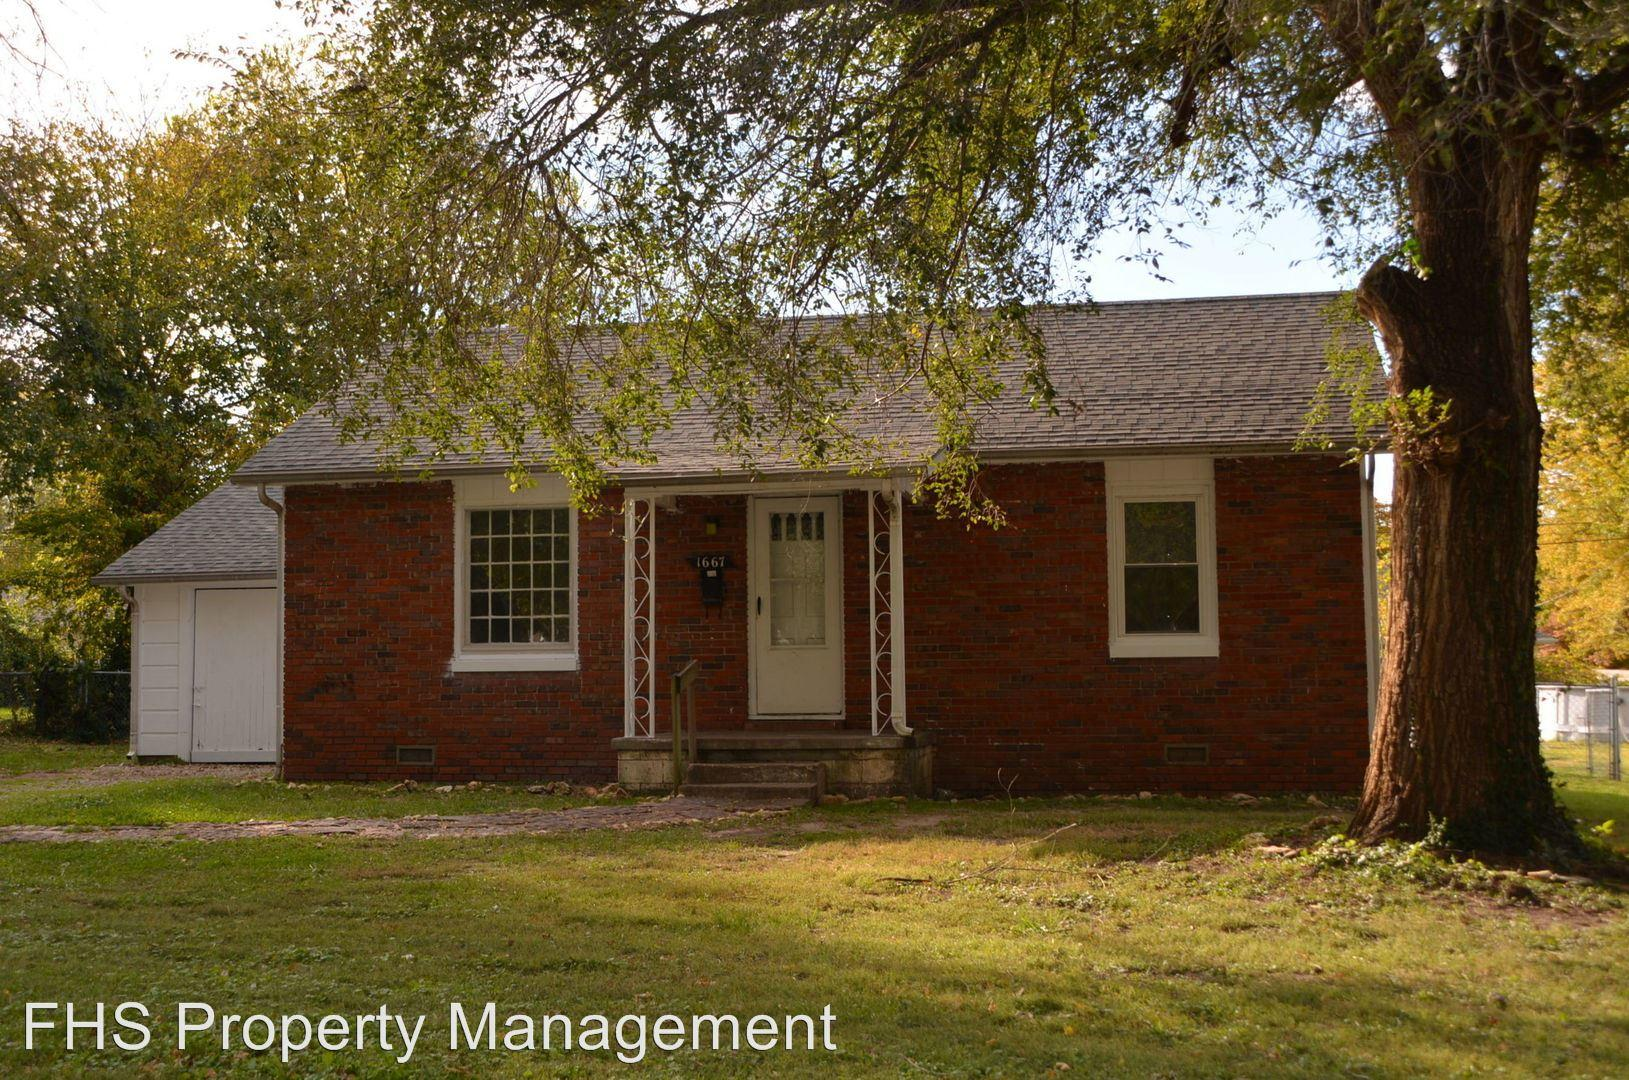 1667 n hayes ave for rent springfield mo trulia 1667 n hayes ave solutioingenieria Choice Image